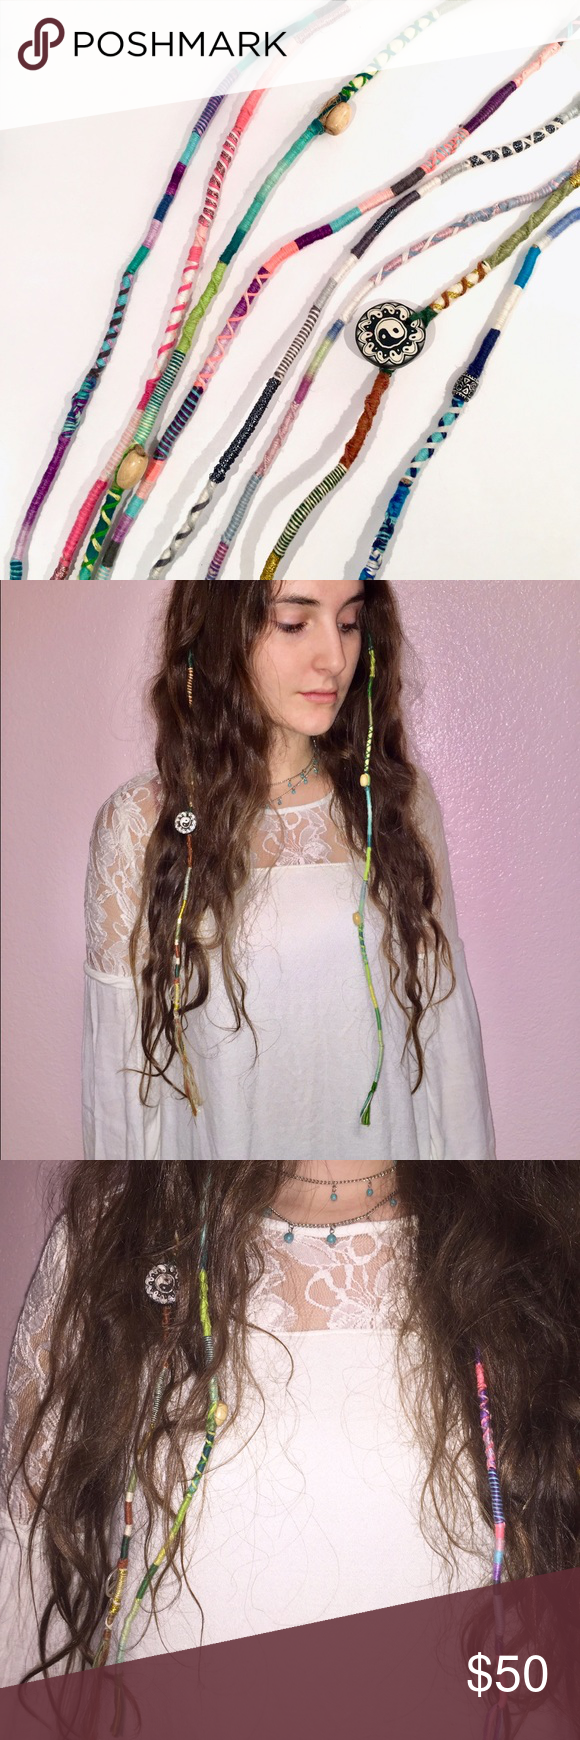 6 Hippie Boho Hair Extensions Boutique Hippie Boho Brandy